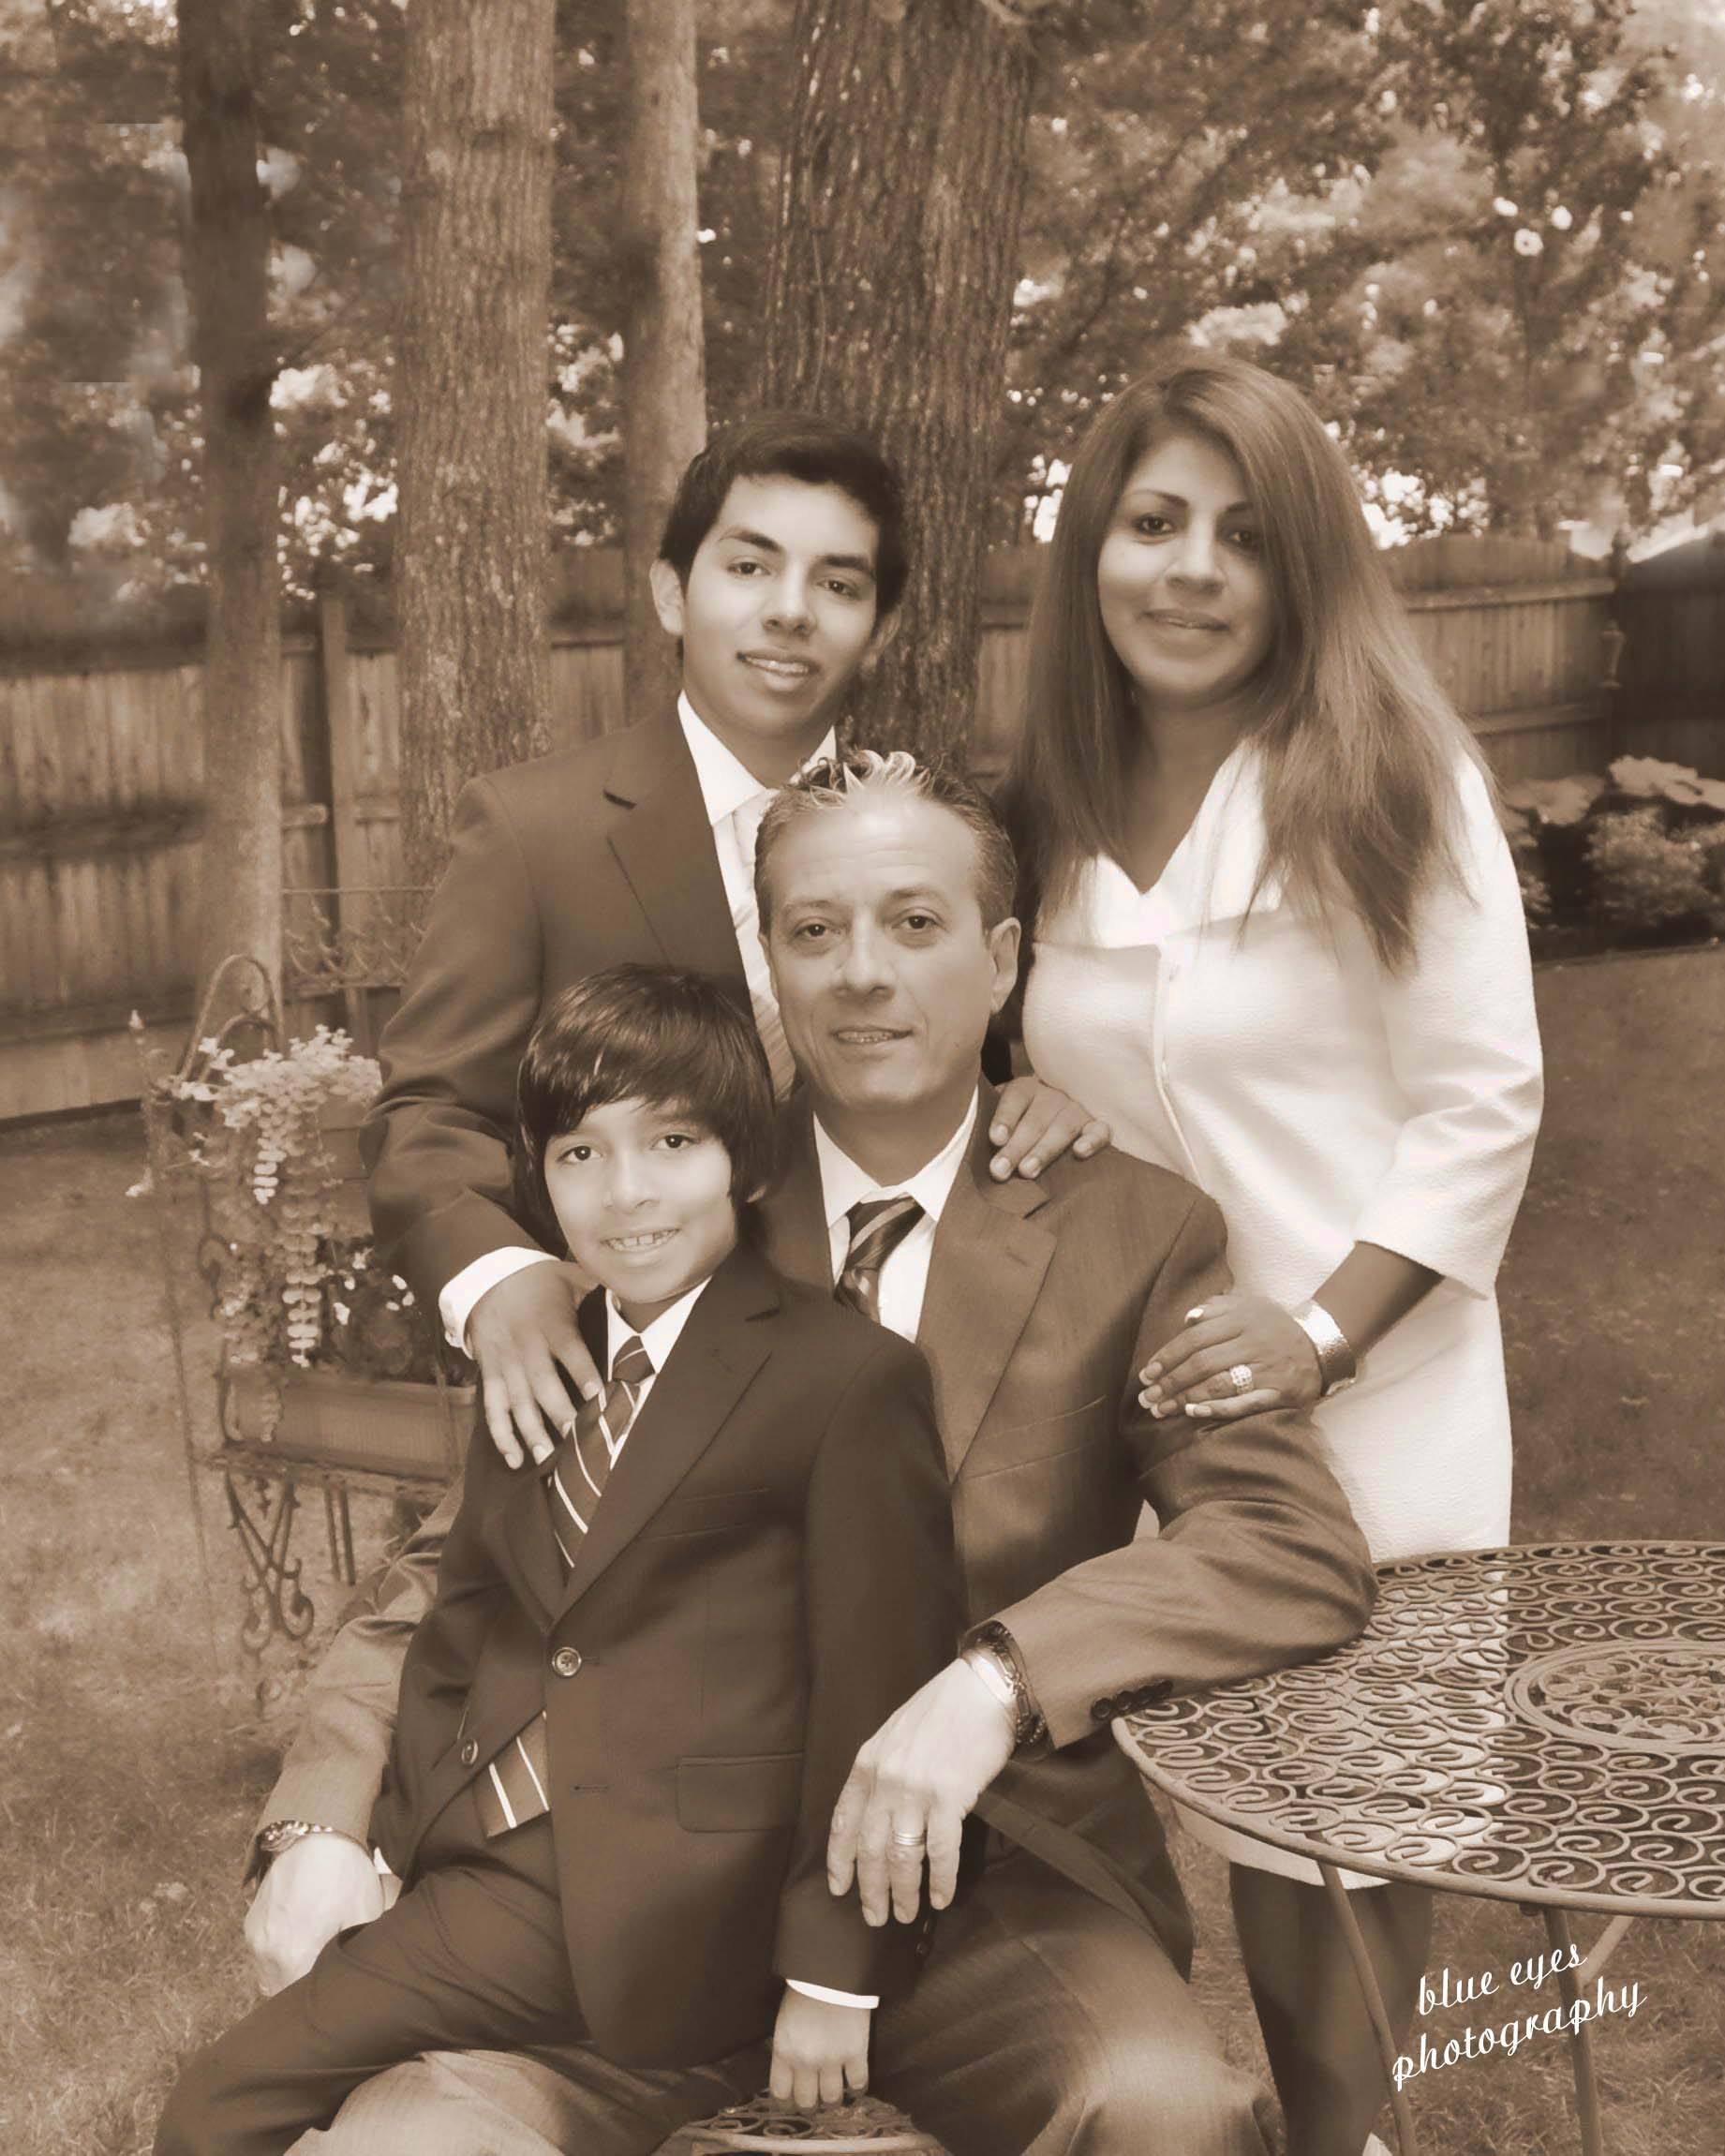 Chef Andrea Covino and his family in Millville, New Jersey.